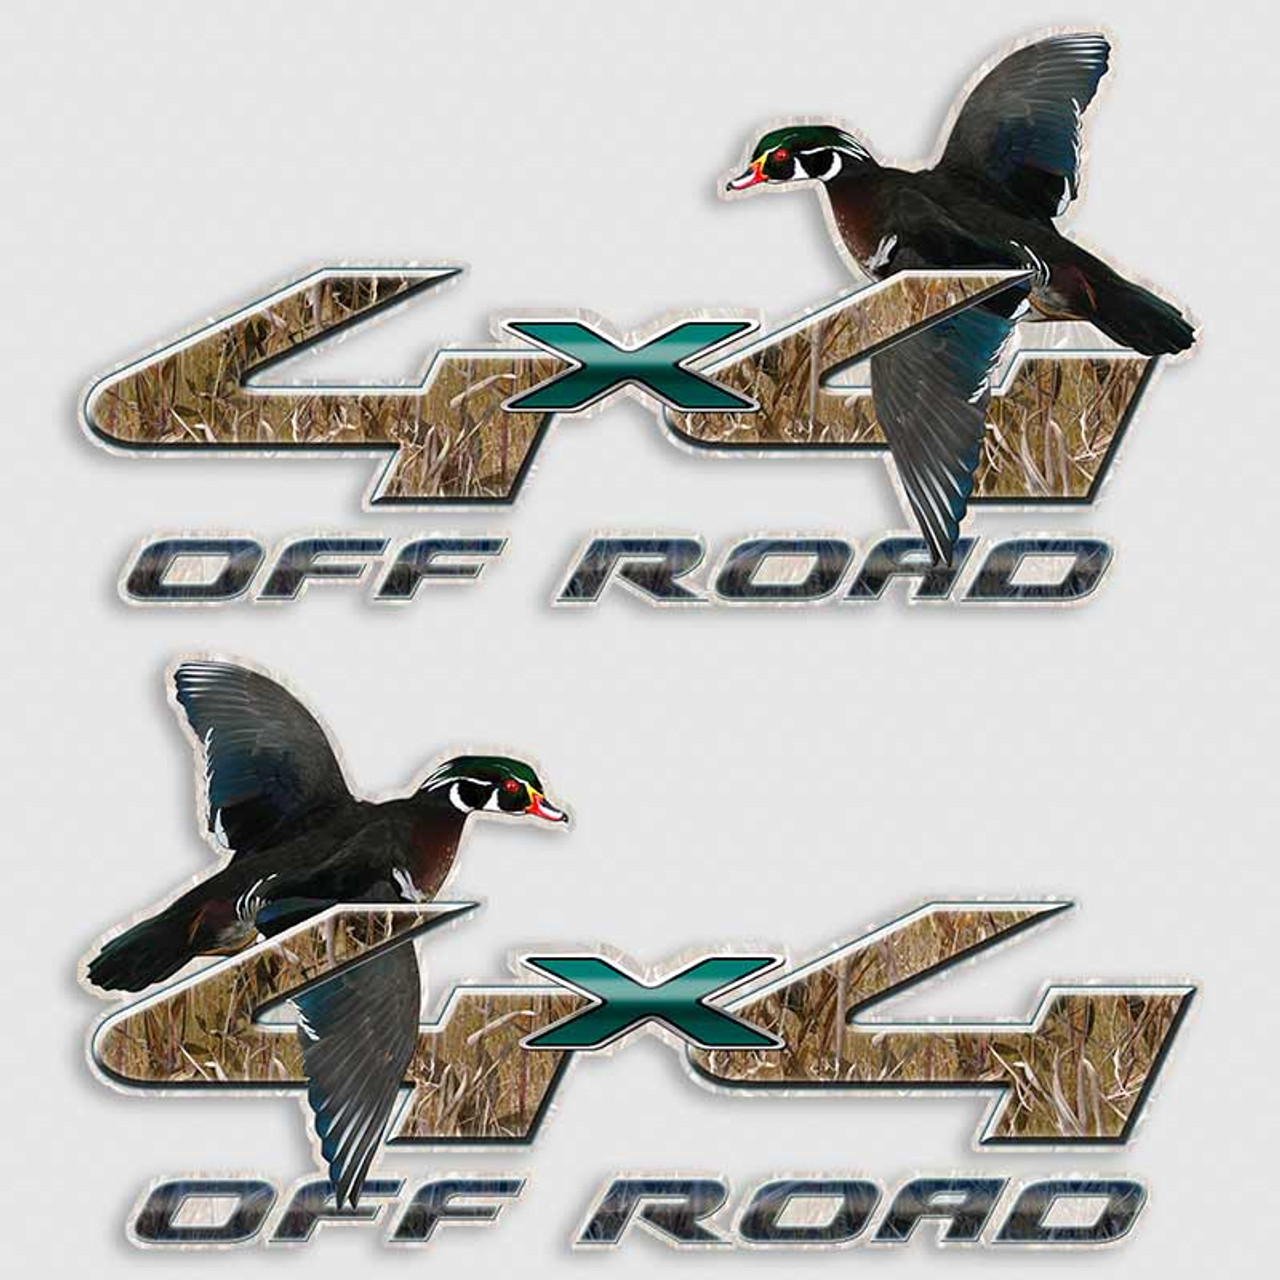 Wood Duck Ford X Truck Decals Waterfowl Hunting Sticker - Hunting decals for truckshuntingfishing window decals in white or camouflage at woods